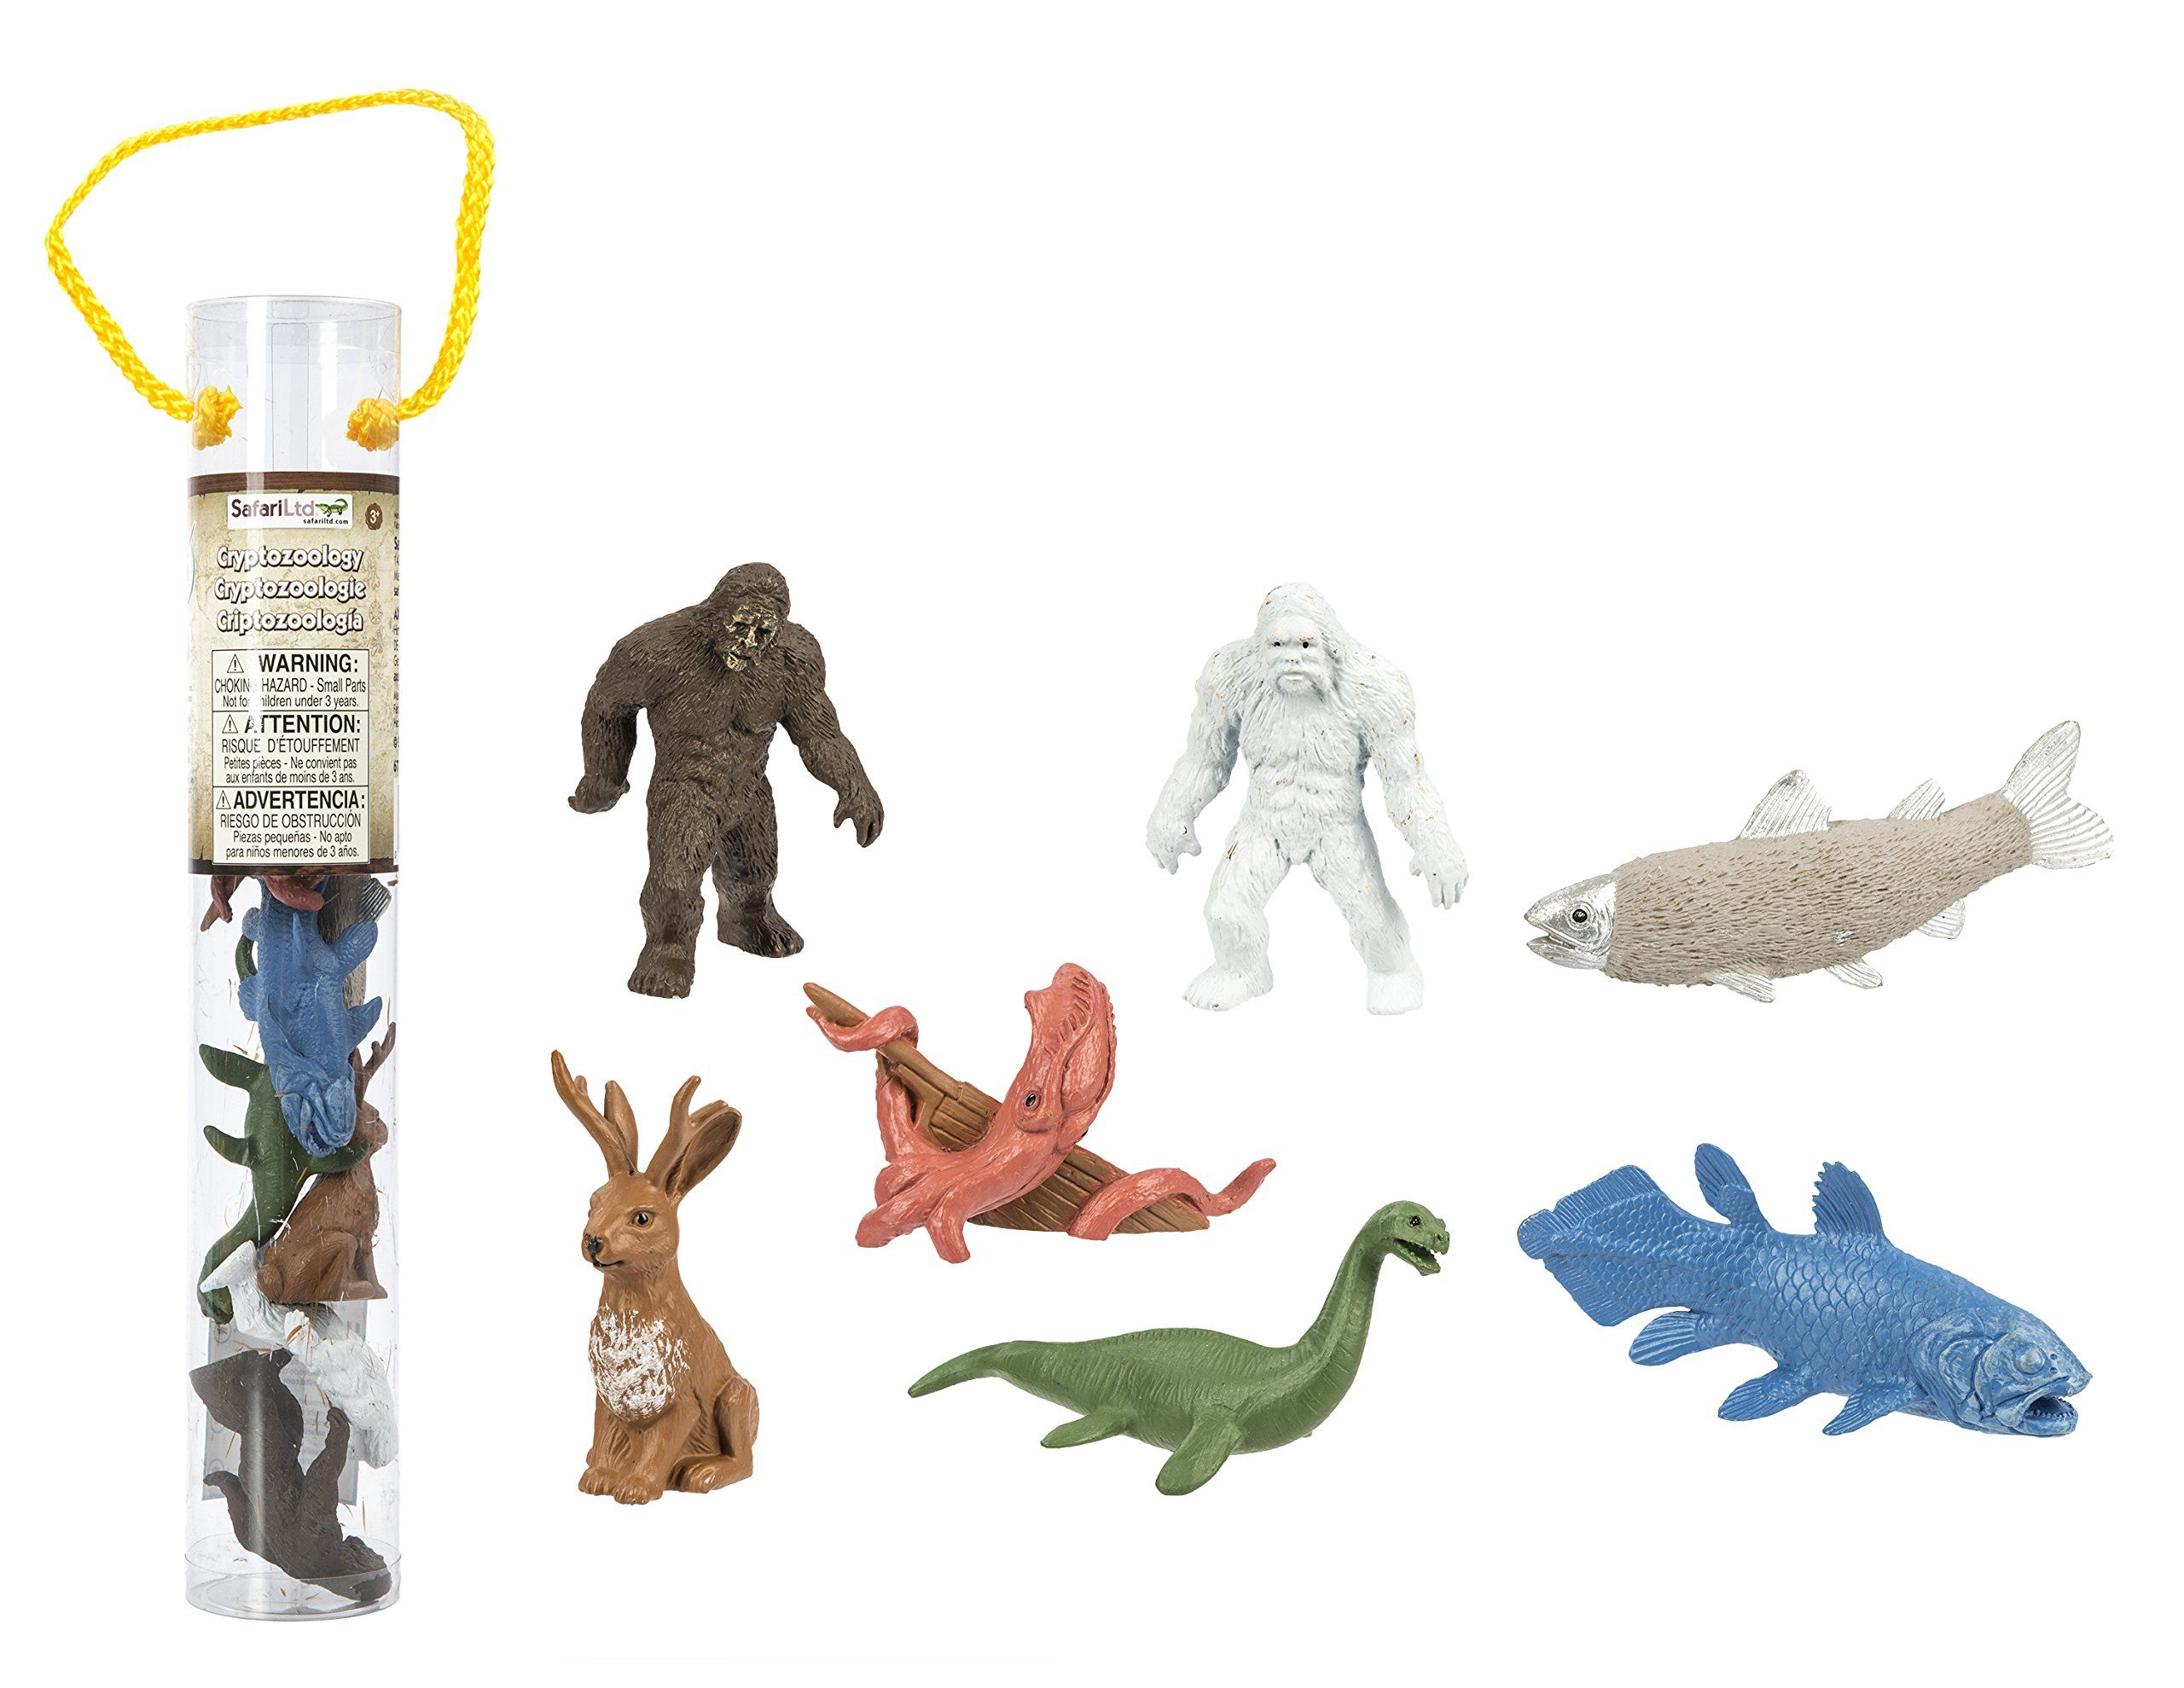 Safari Toys For Boys : Safari ltd cryptozoology toob with mythical and strange